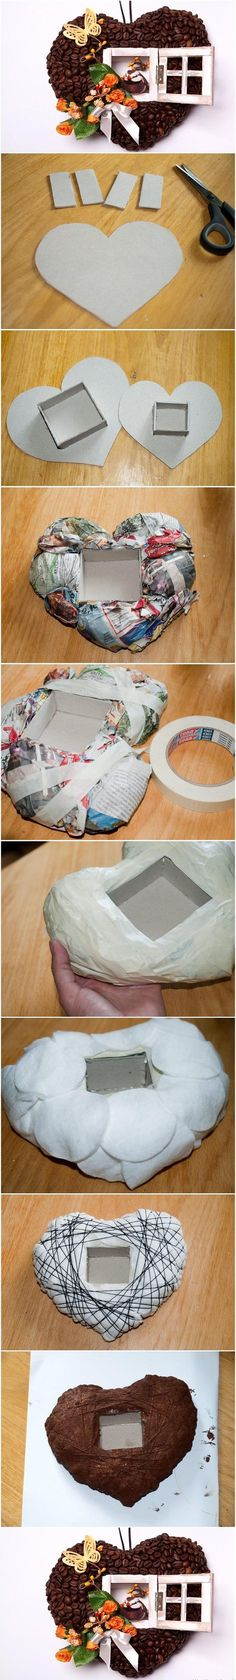 paper mache shadow box. Good step by step that could be used for any shape.